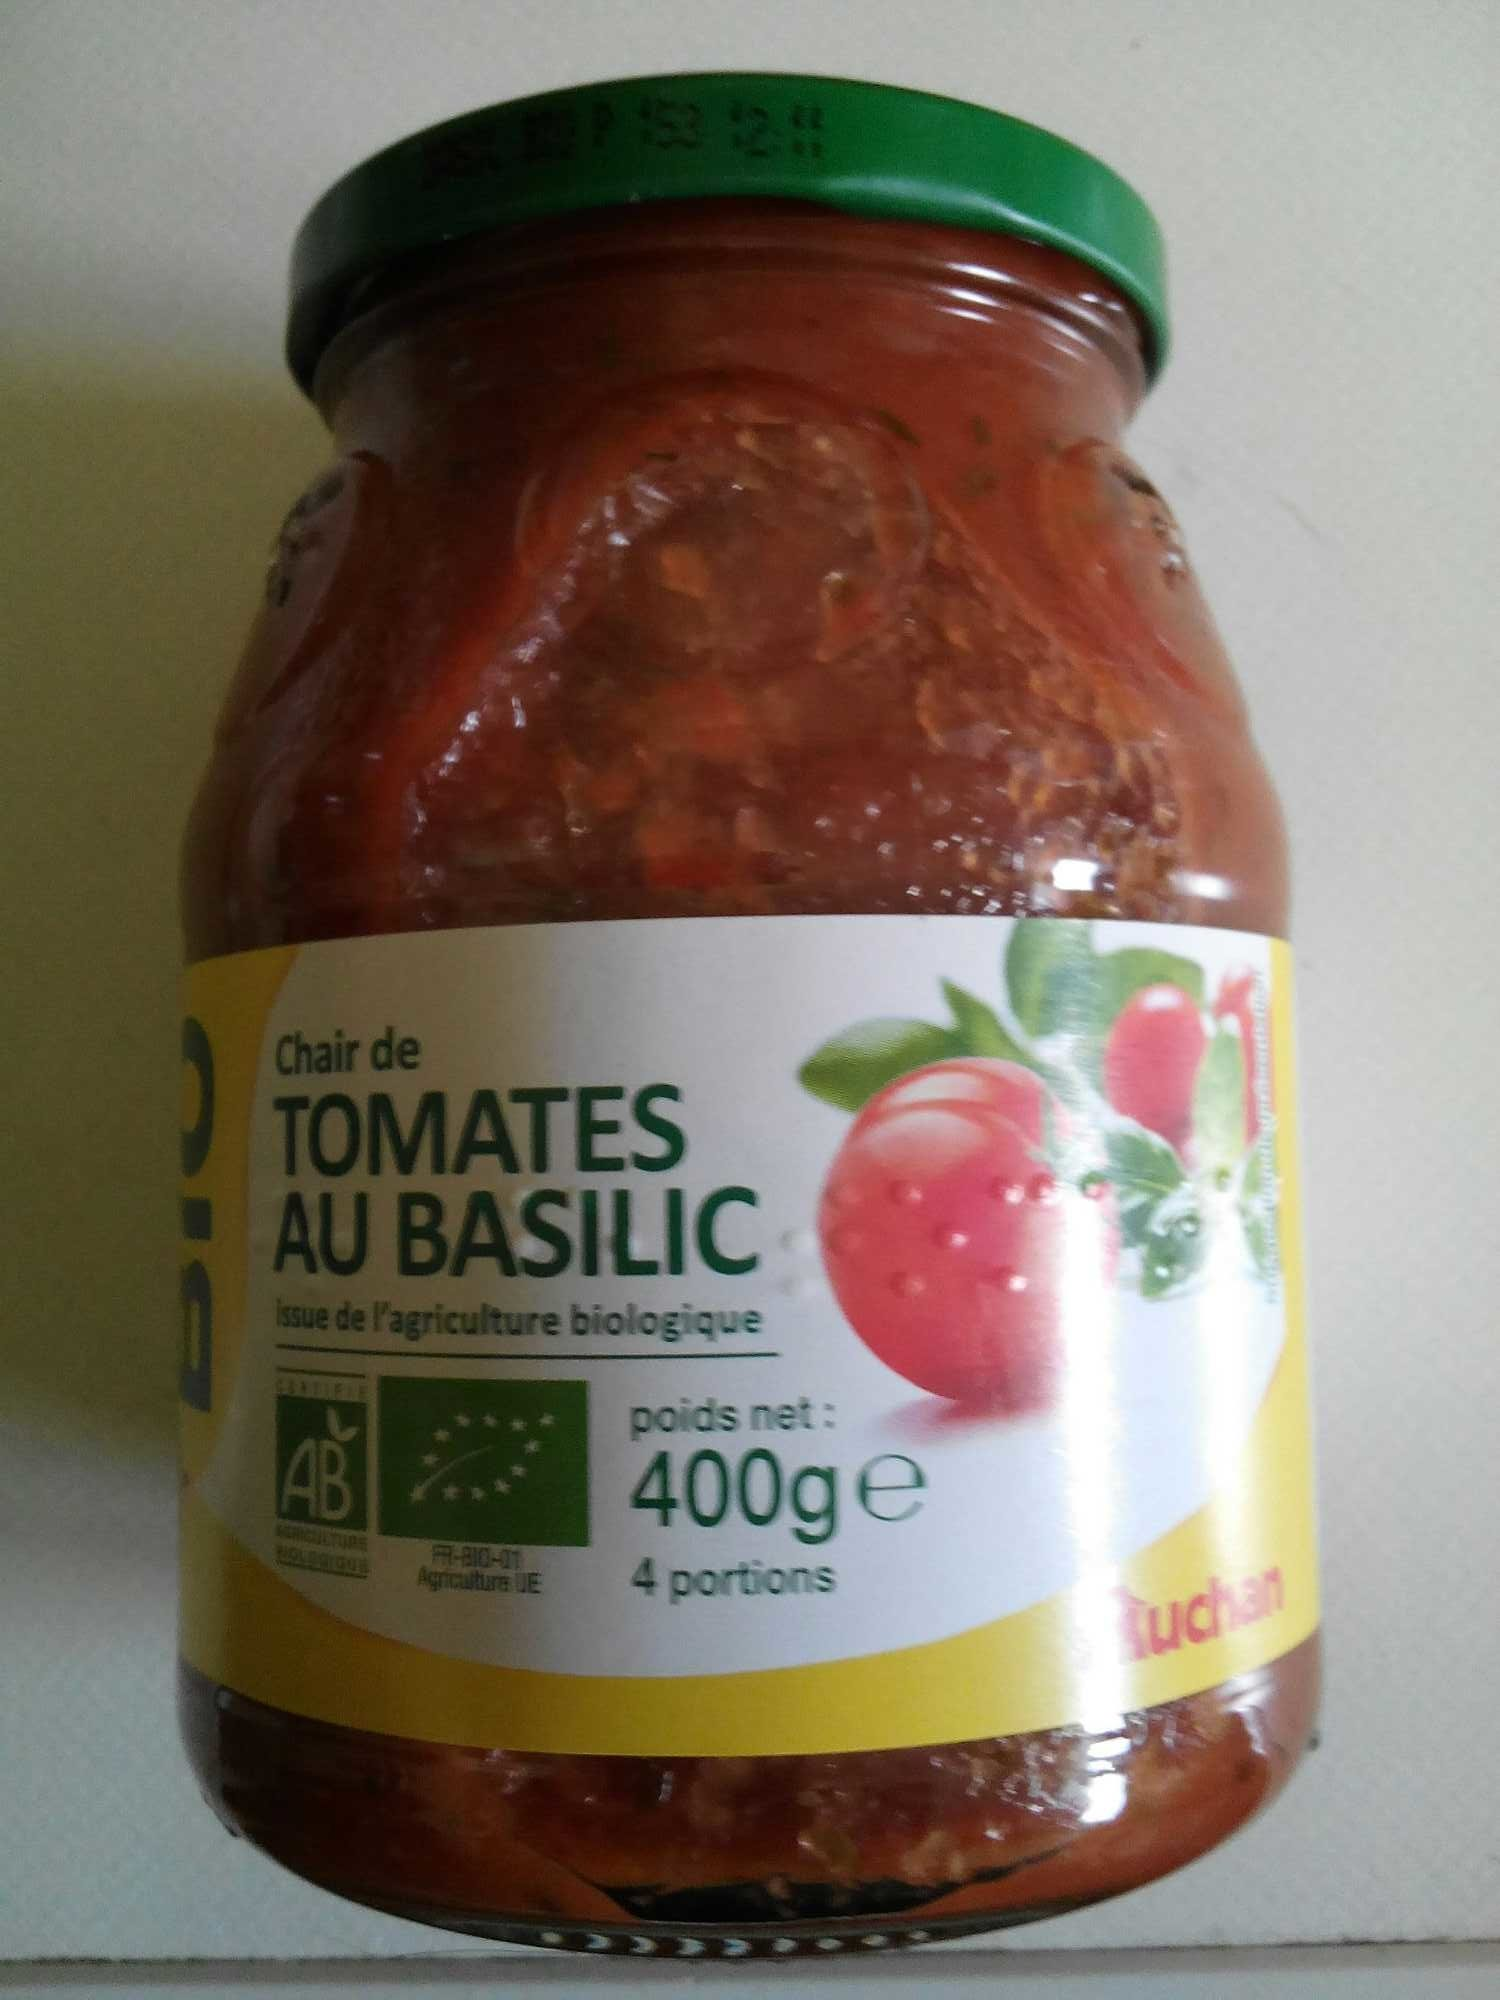 Chair de Tomates au Basilic - Product - fr